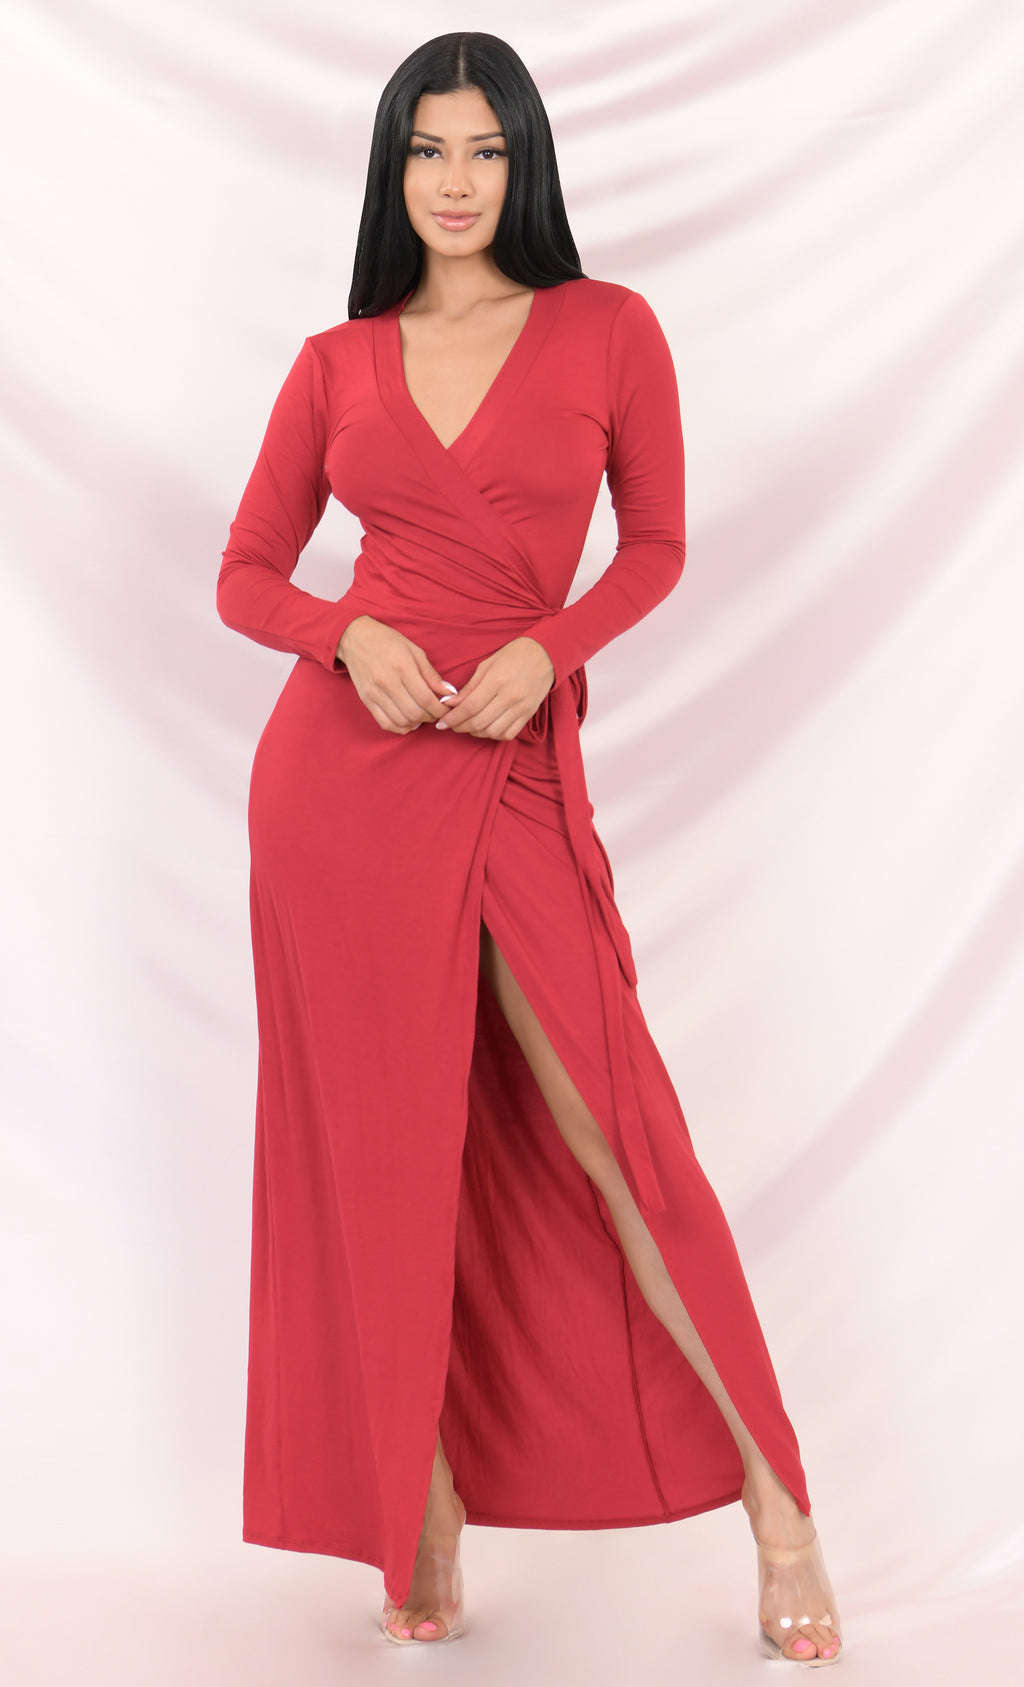 Every Which Way Red Long Sleeve Plunge V Neck Wrap Front Slit Maxi Casual Dress